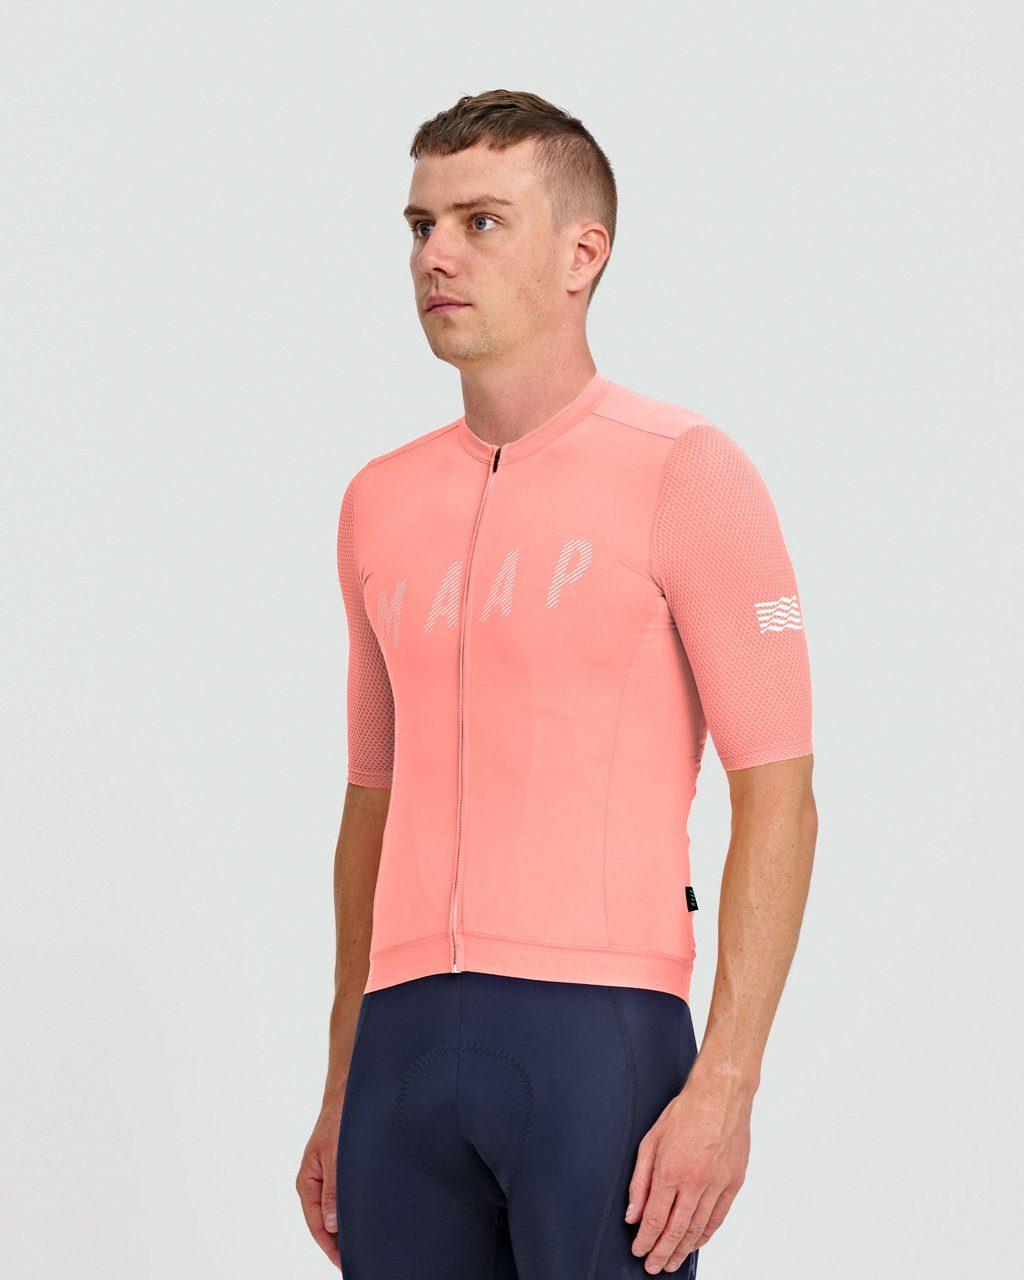 Echo Pro Base Jersey - Light Coral Cycling Jersey MAAP